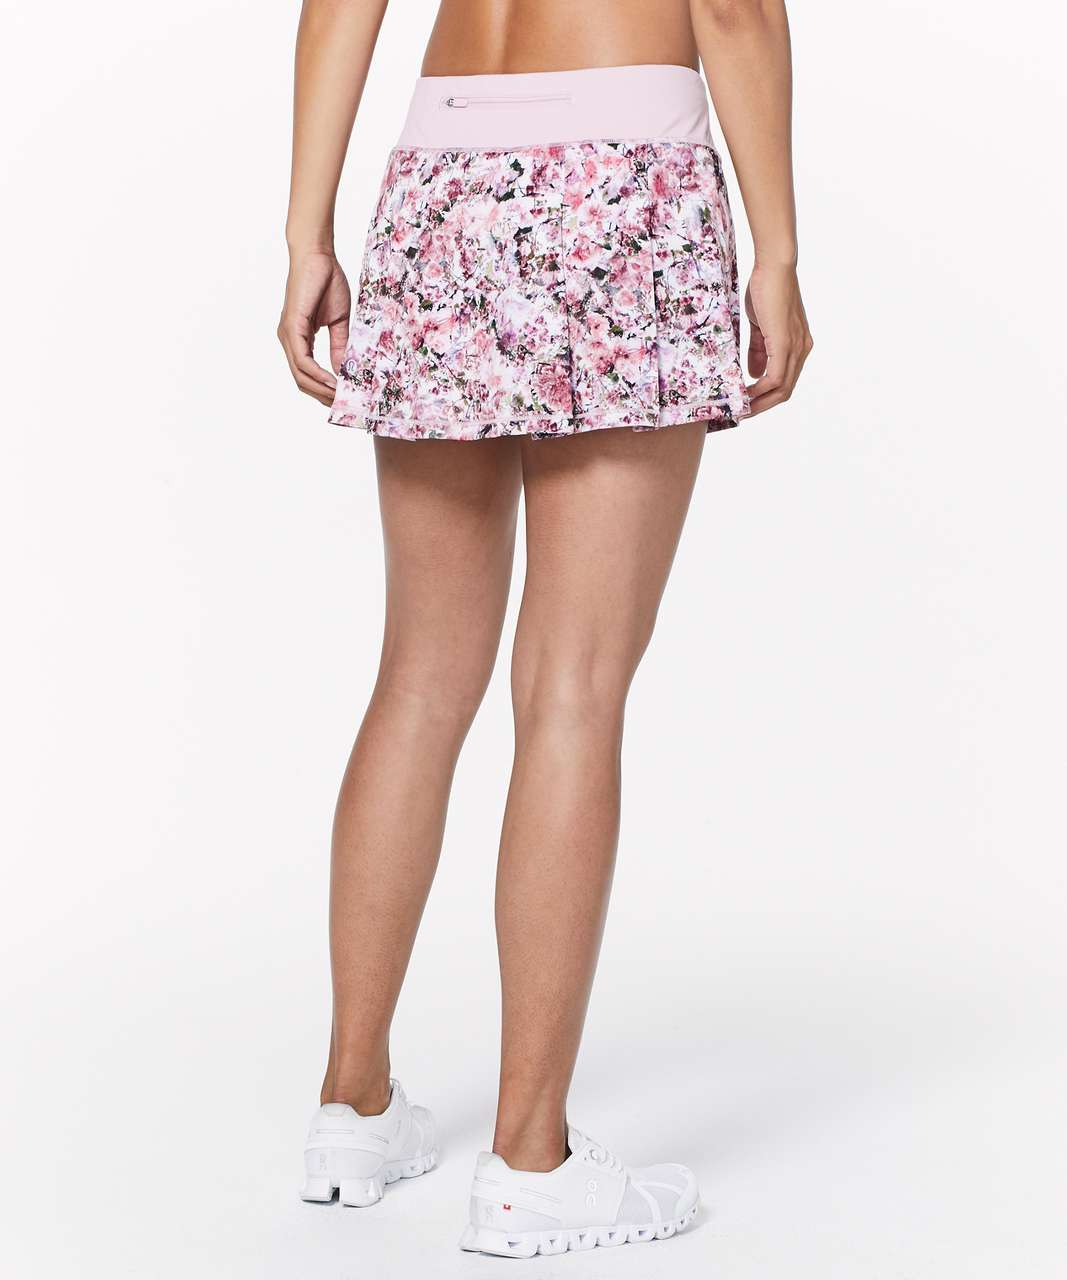 Lululemon Pace Rival Skirt (Regular) *No Panels - Blossom Spritz Multi / Pink Chalk